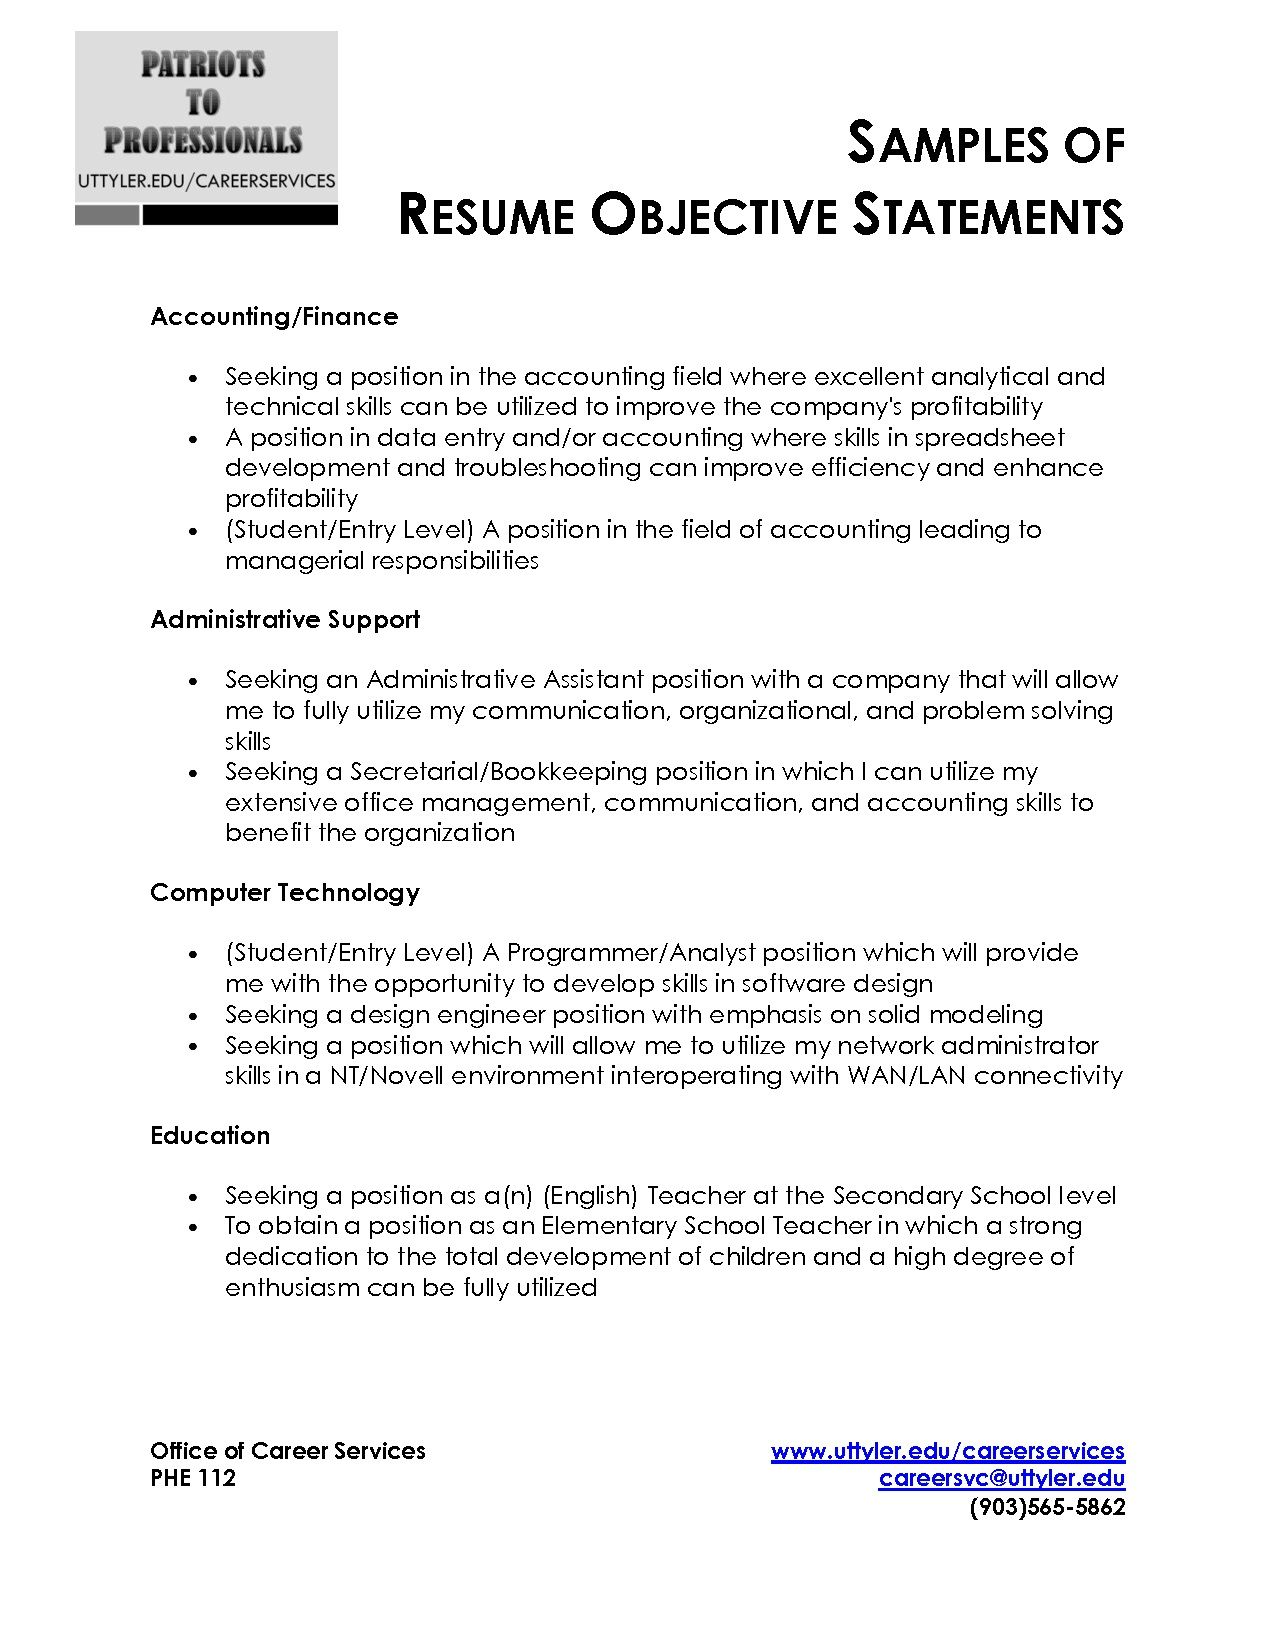 resume Objective Statement For Resume sample resume objective statement adsbygoogle window adsbygoogle